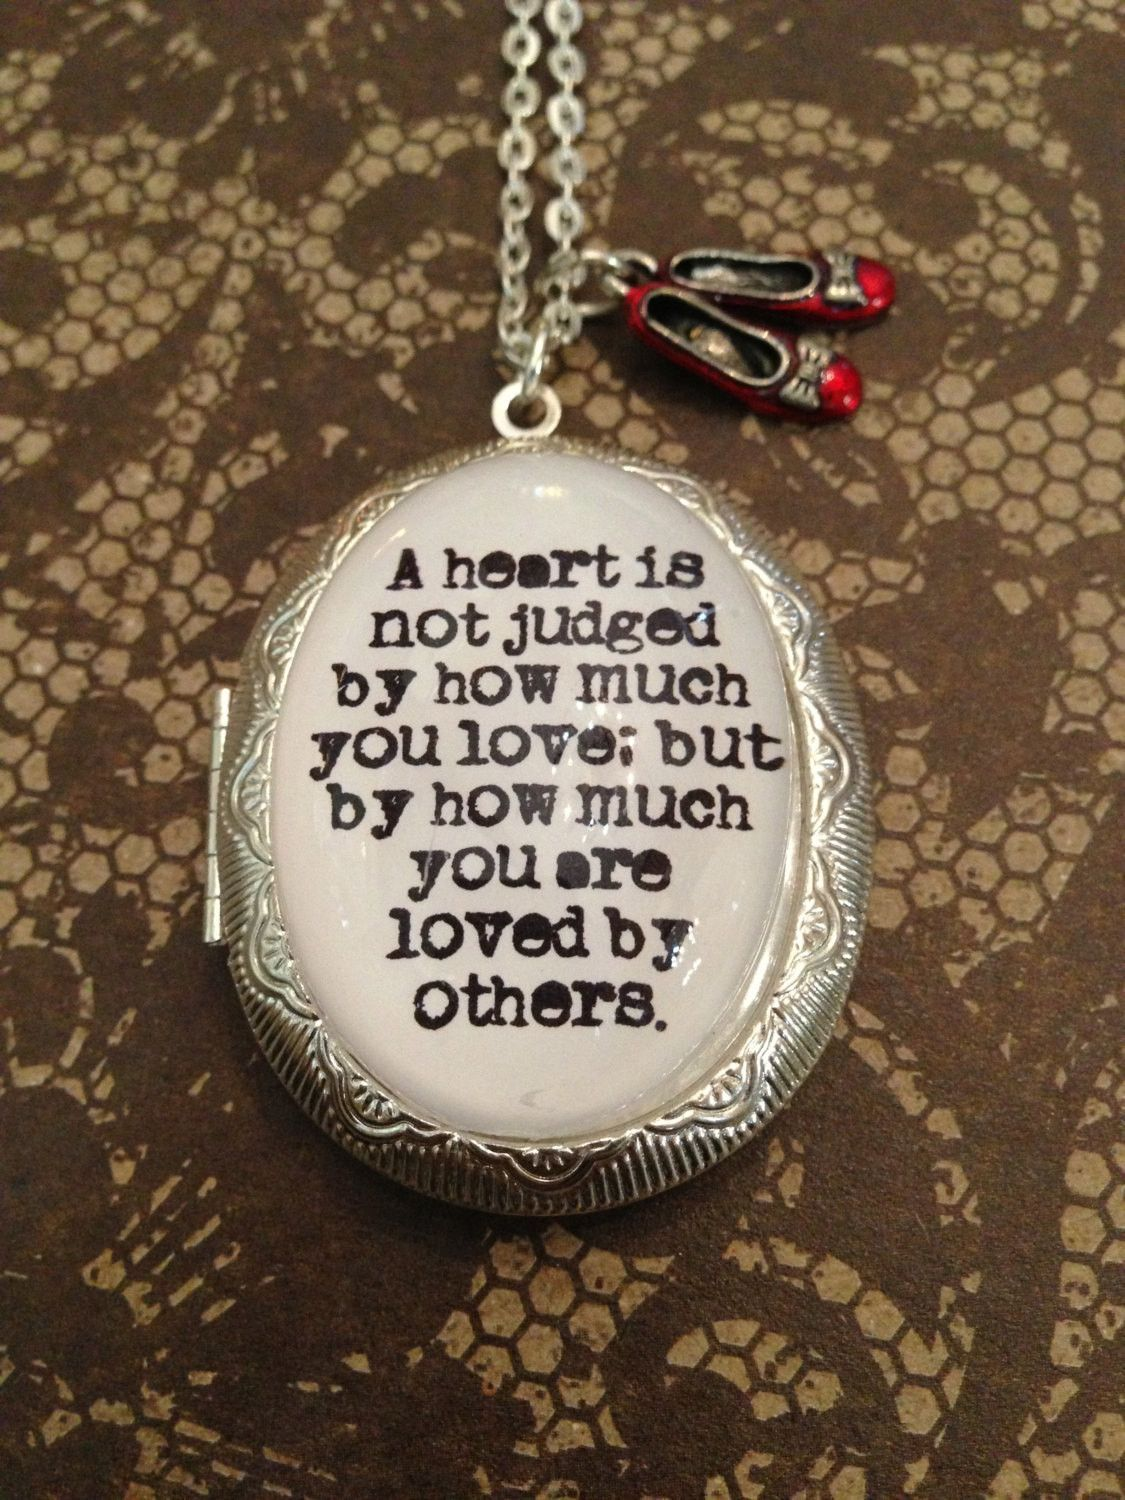 Wizard of oz quotes - Wizard Of Oz Quote Locket Necklace A Heart Is Not Judged By How Much You Love